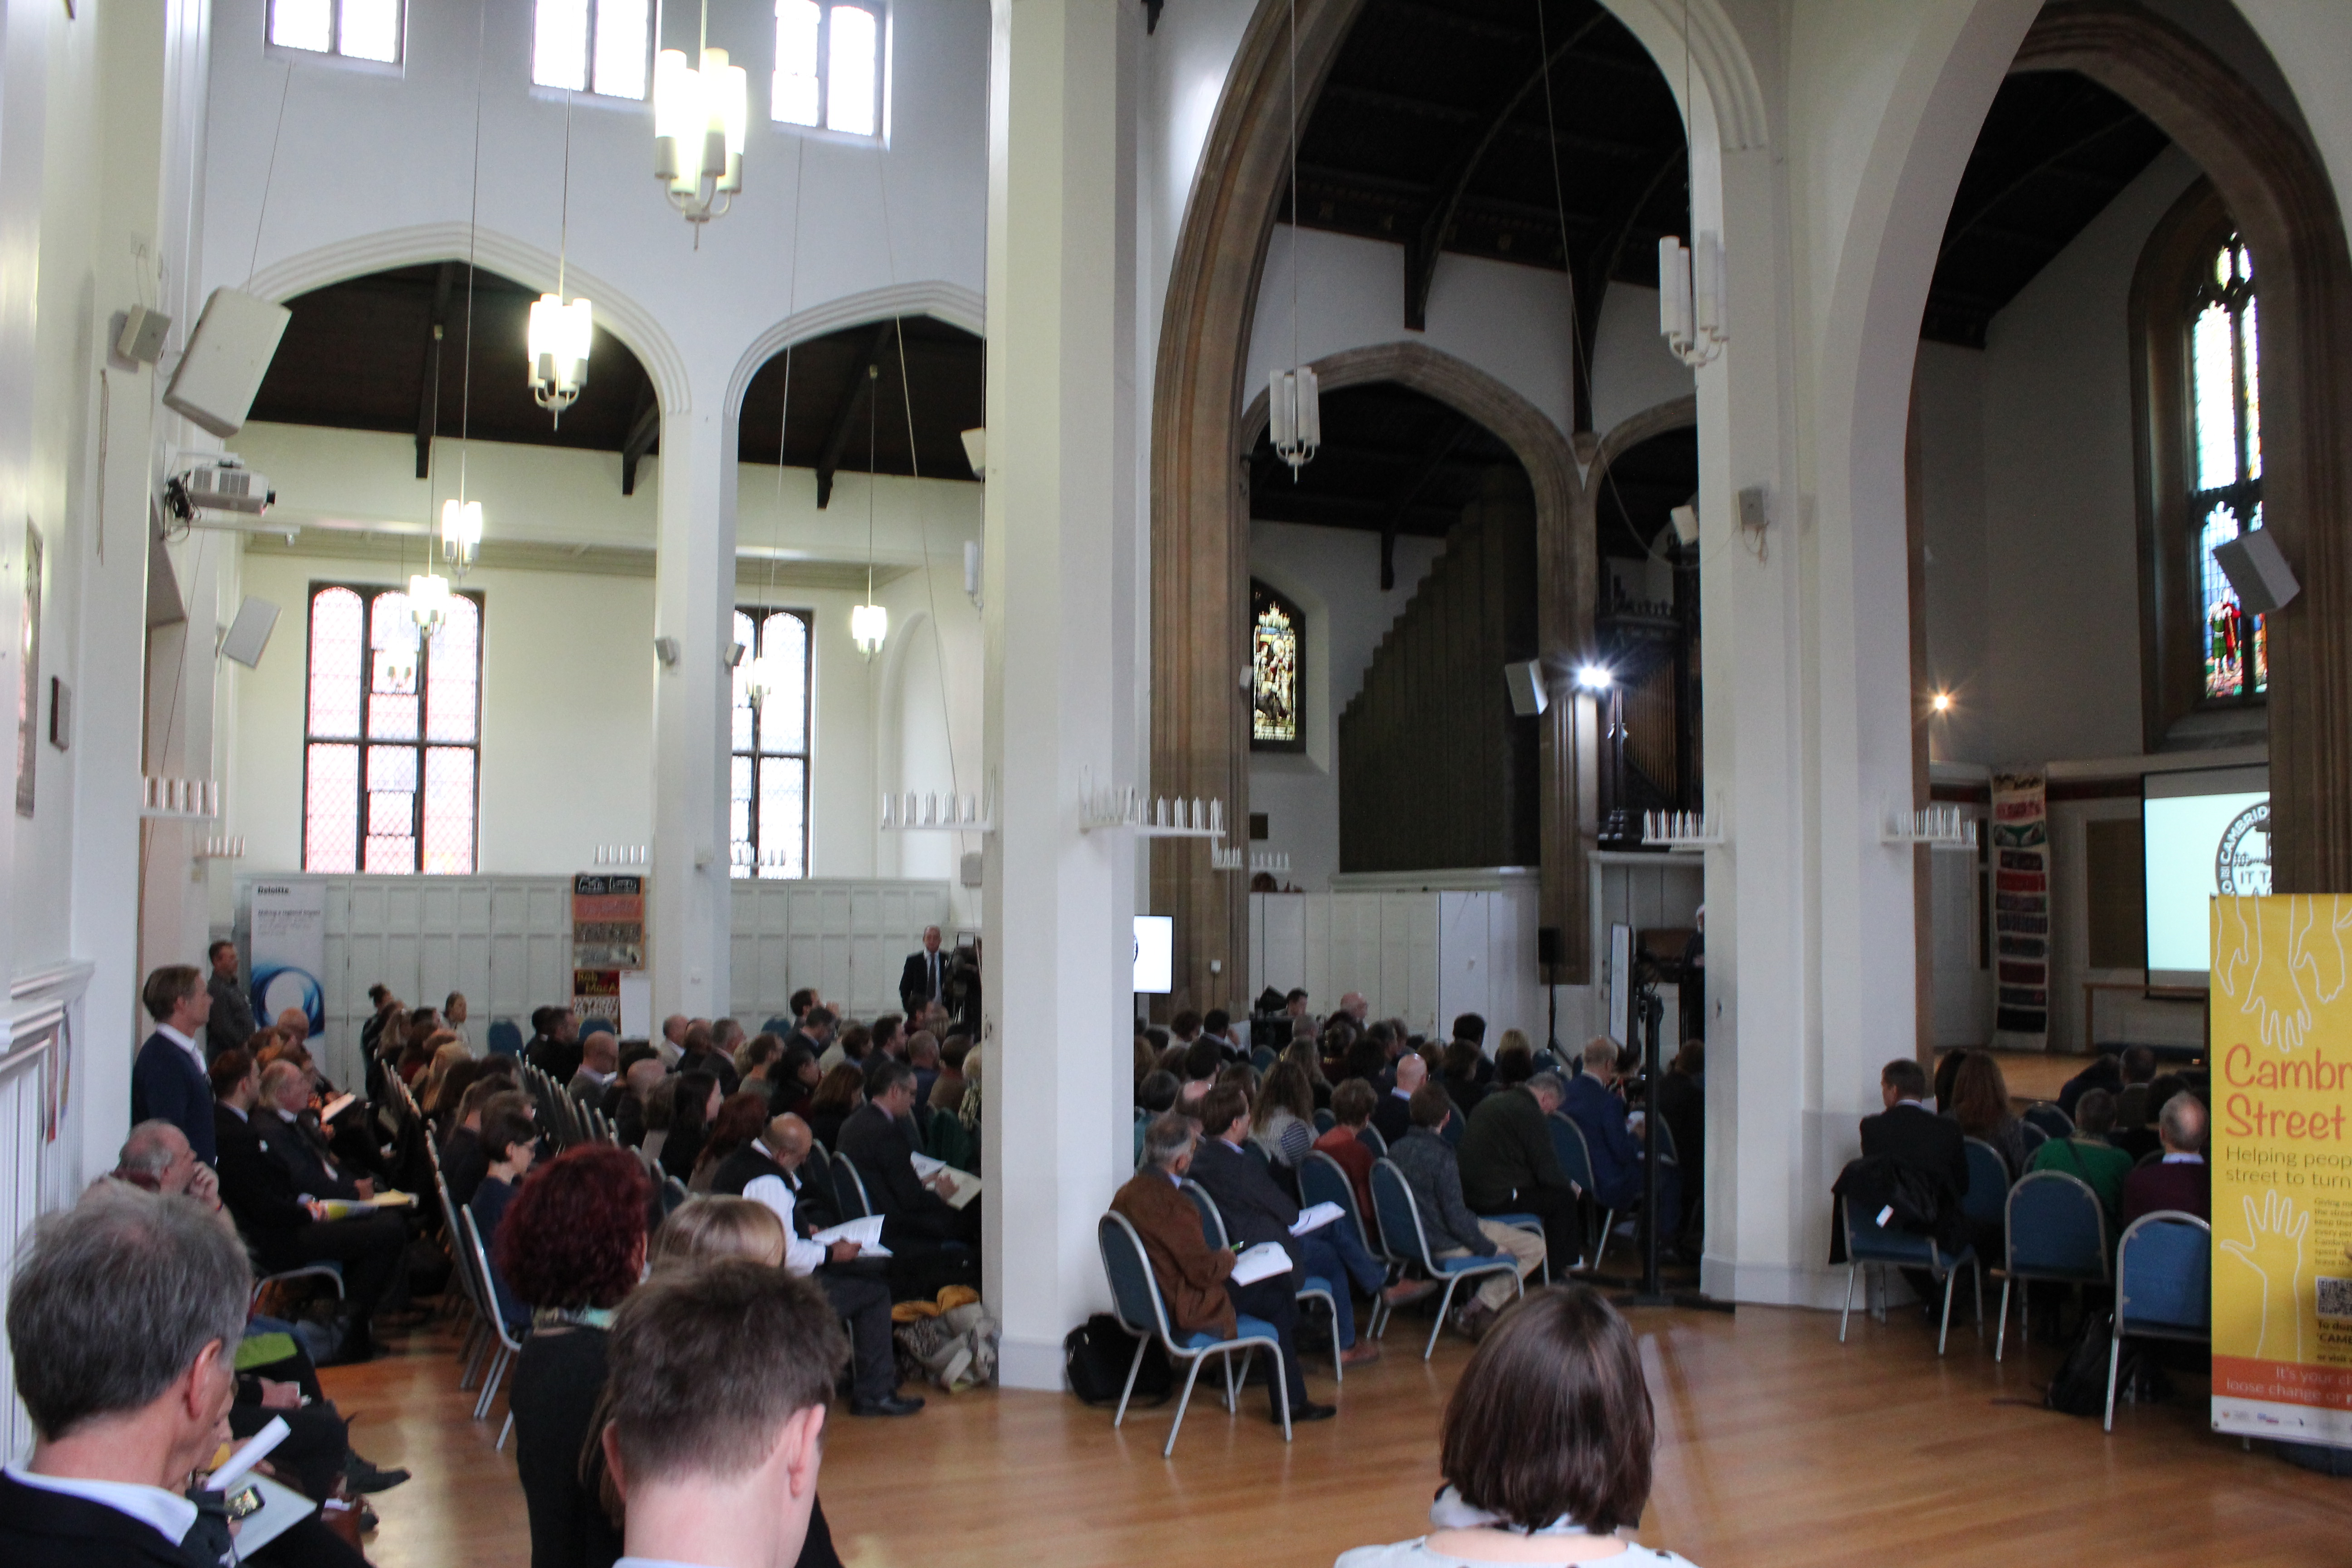 Introductory session in the main hall